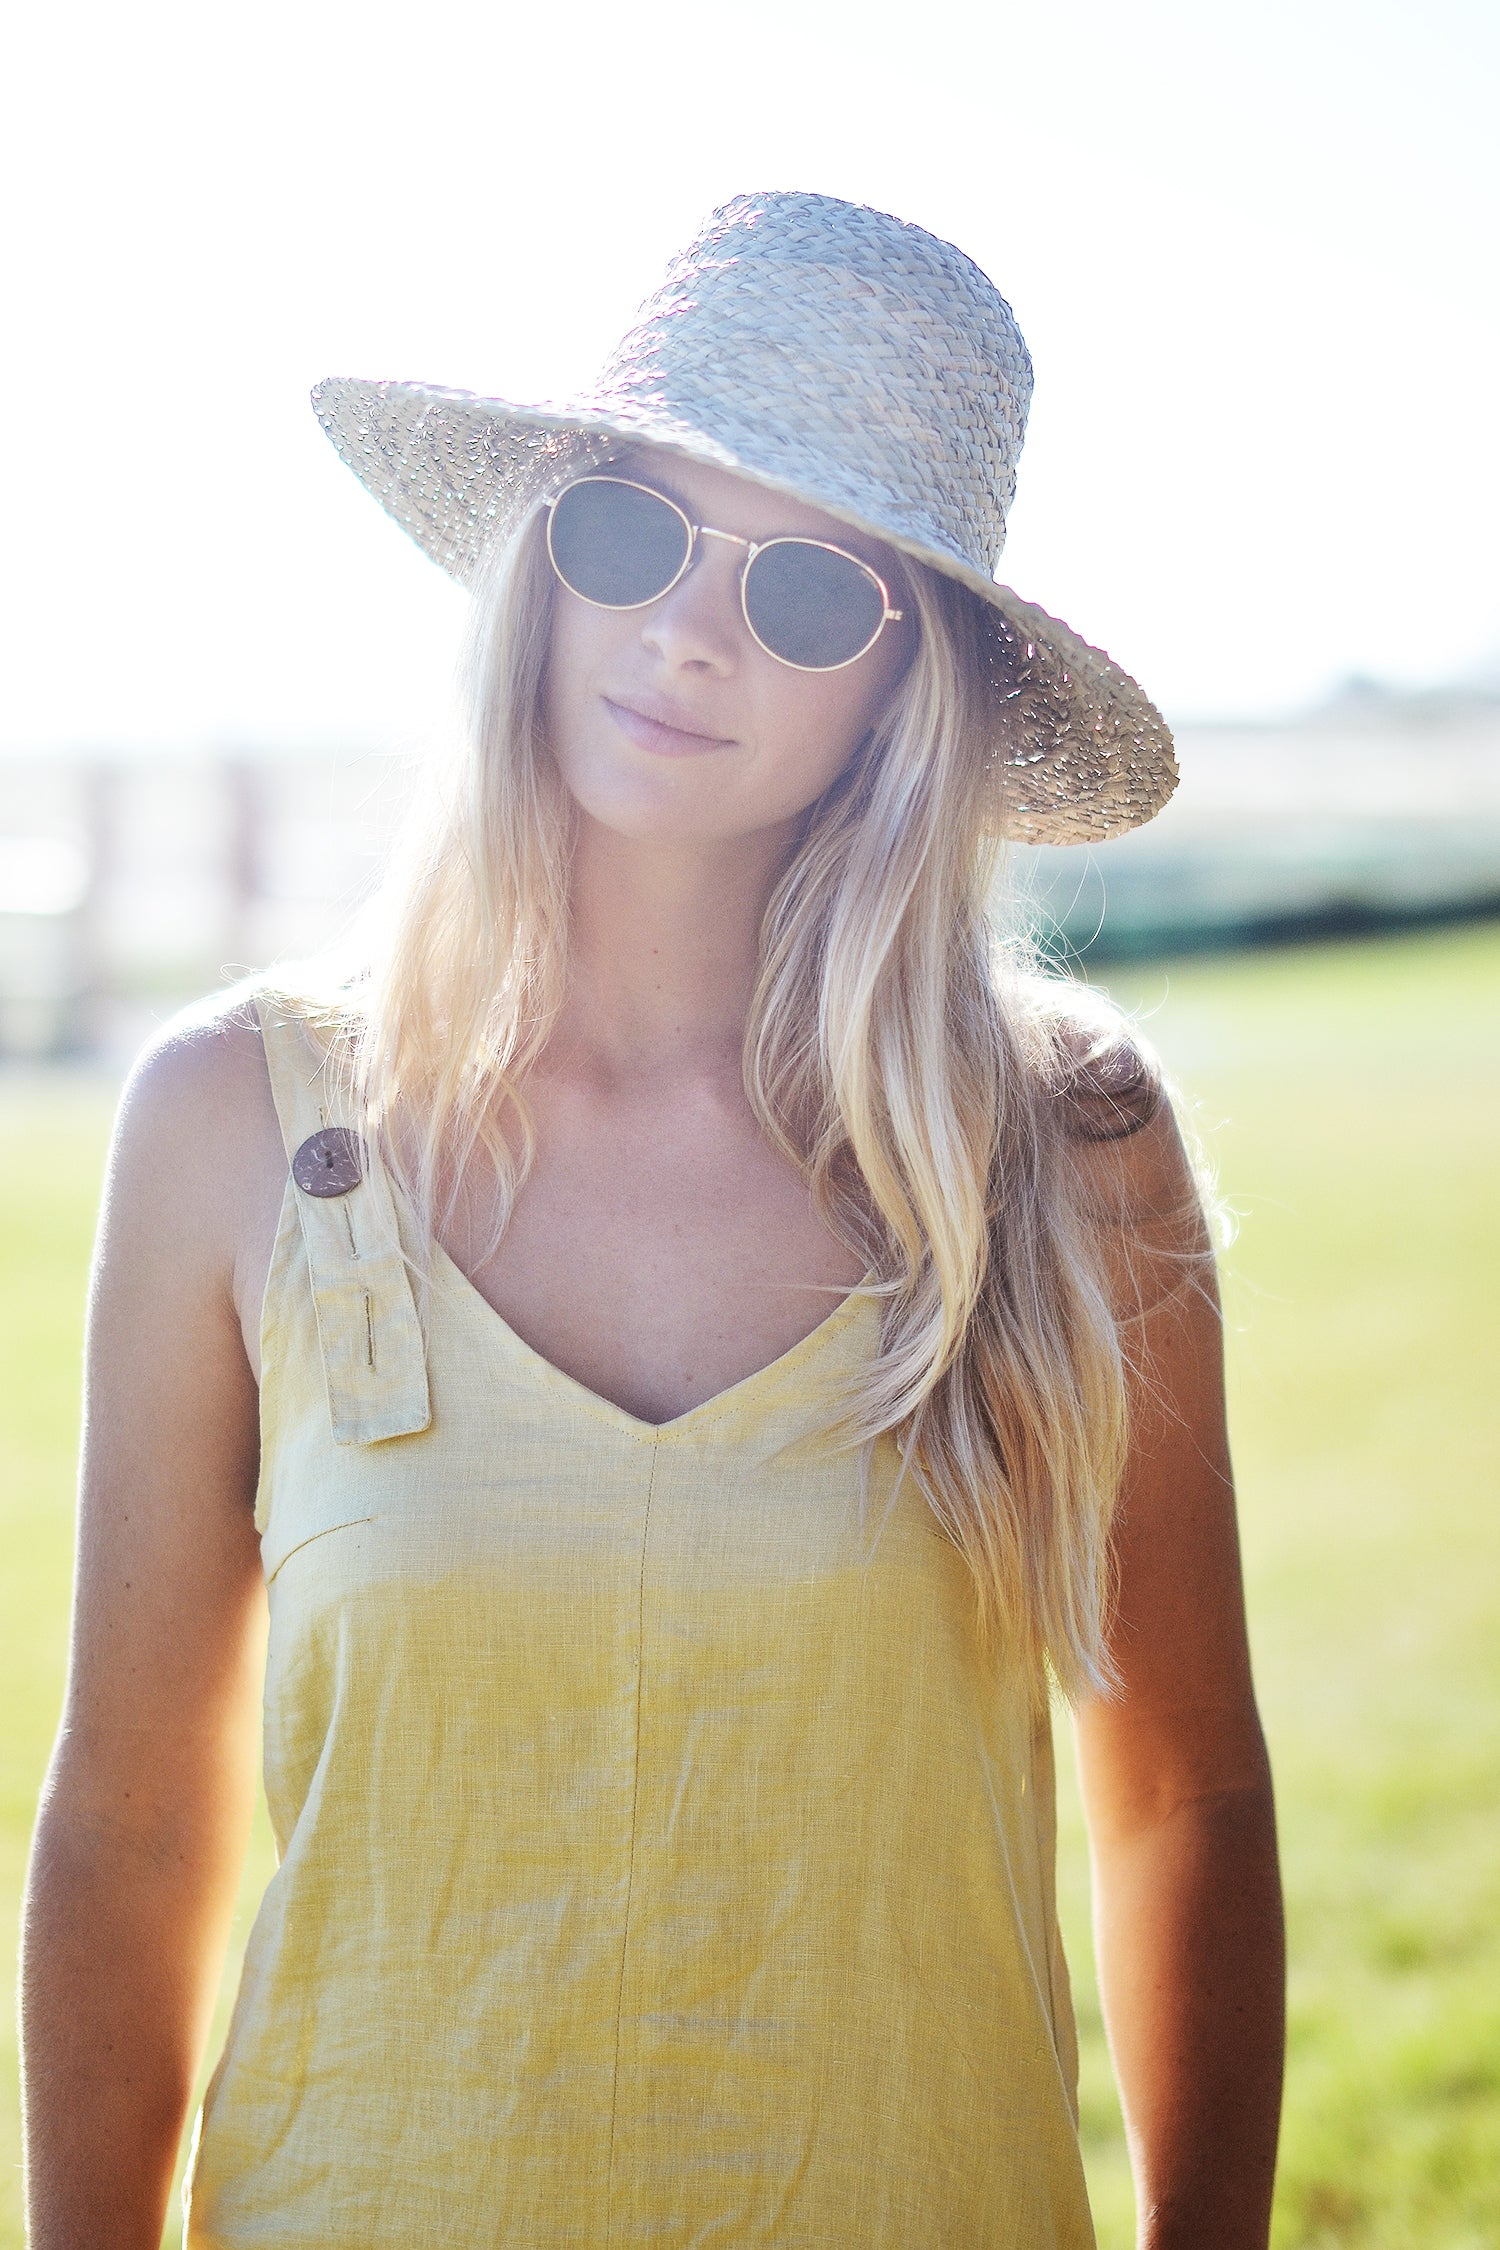 VERANO STRAW HAT - OLAS SUPPLY CO.